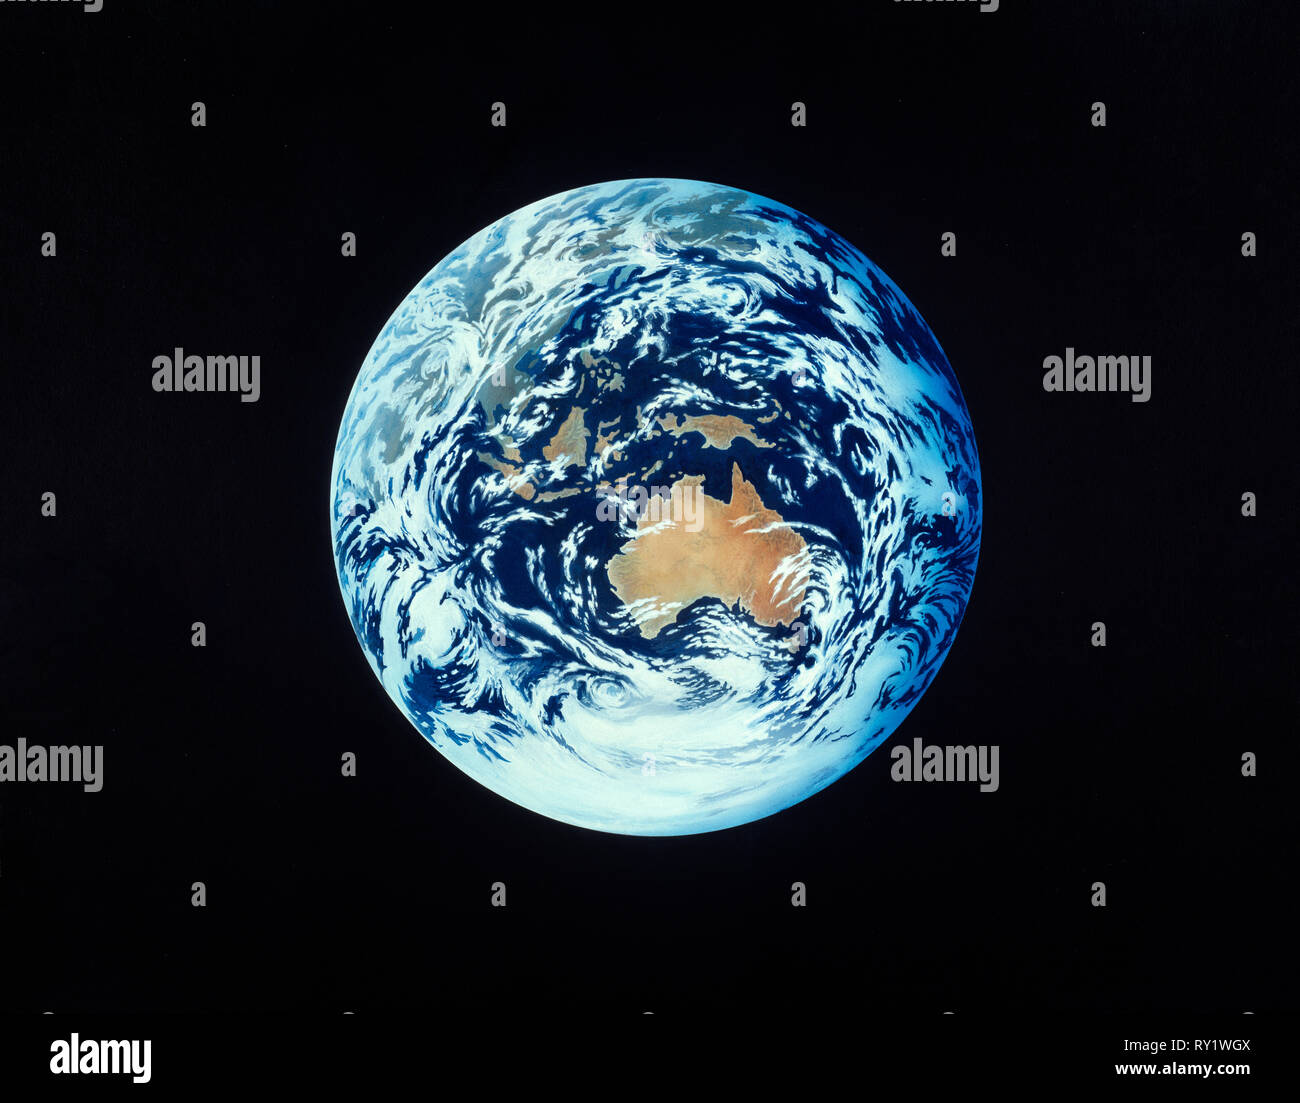 Illustration. Earth from Space. Australia, South East Asia and Antarctica. - Stock Image